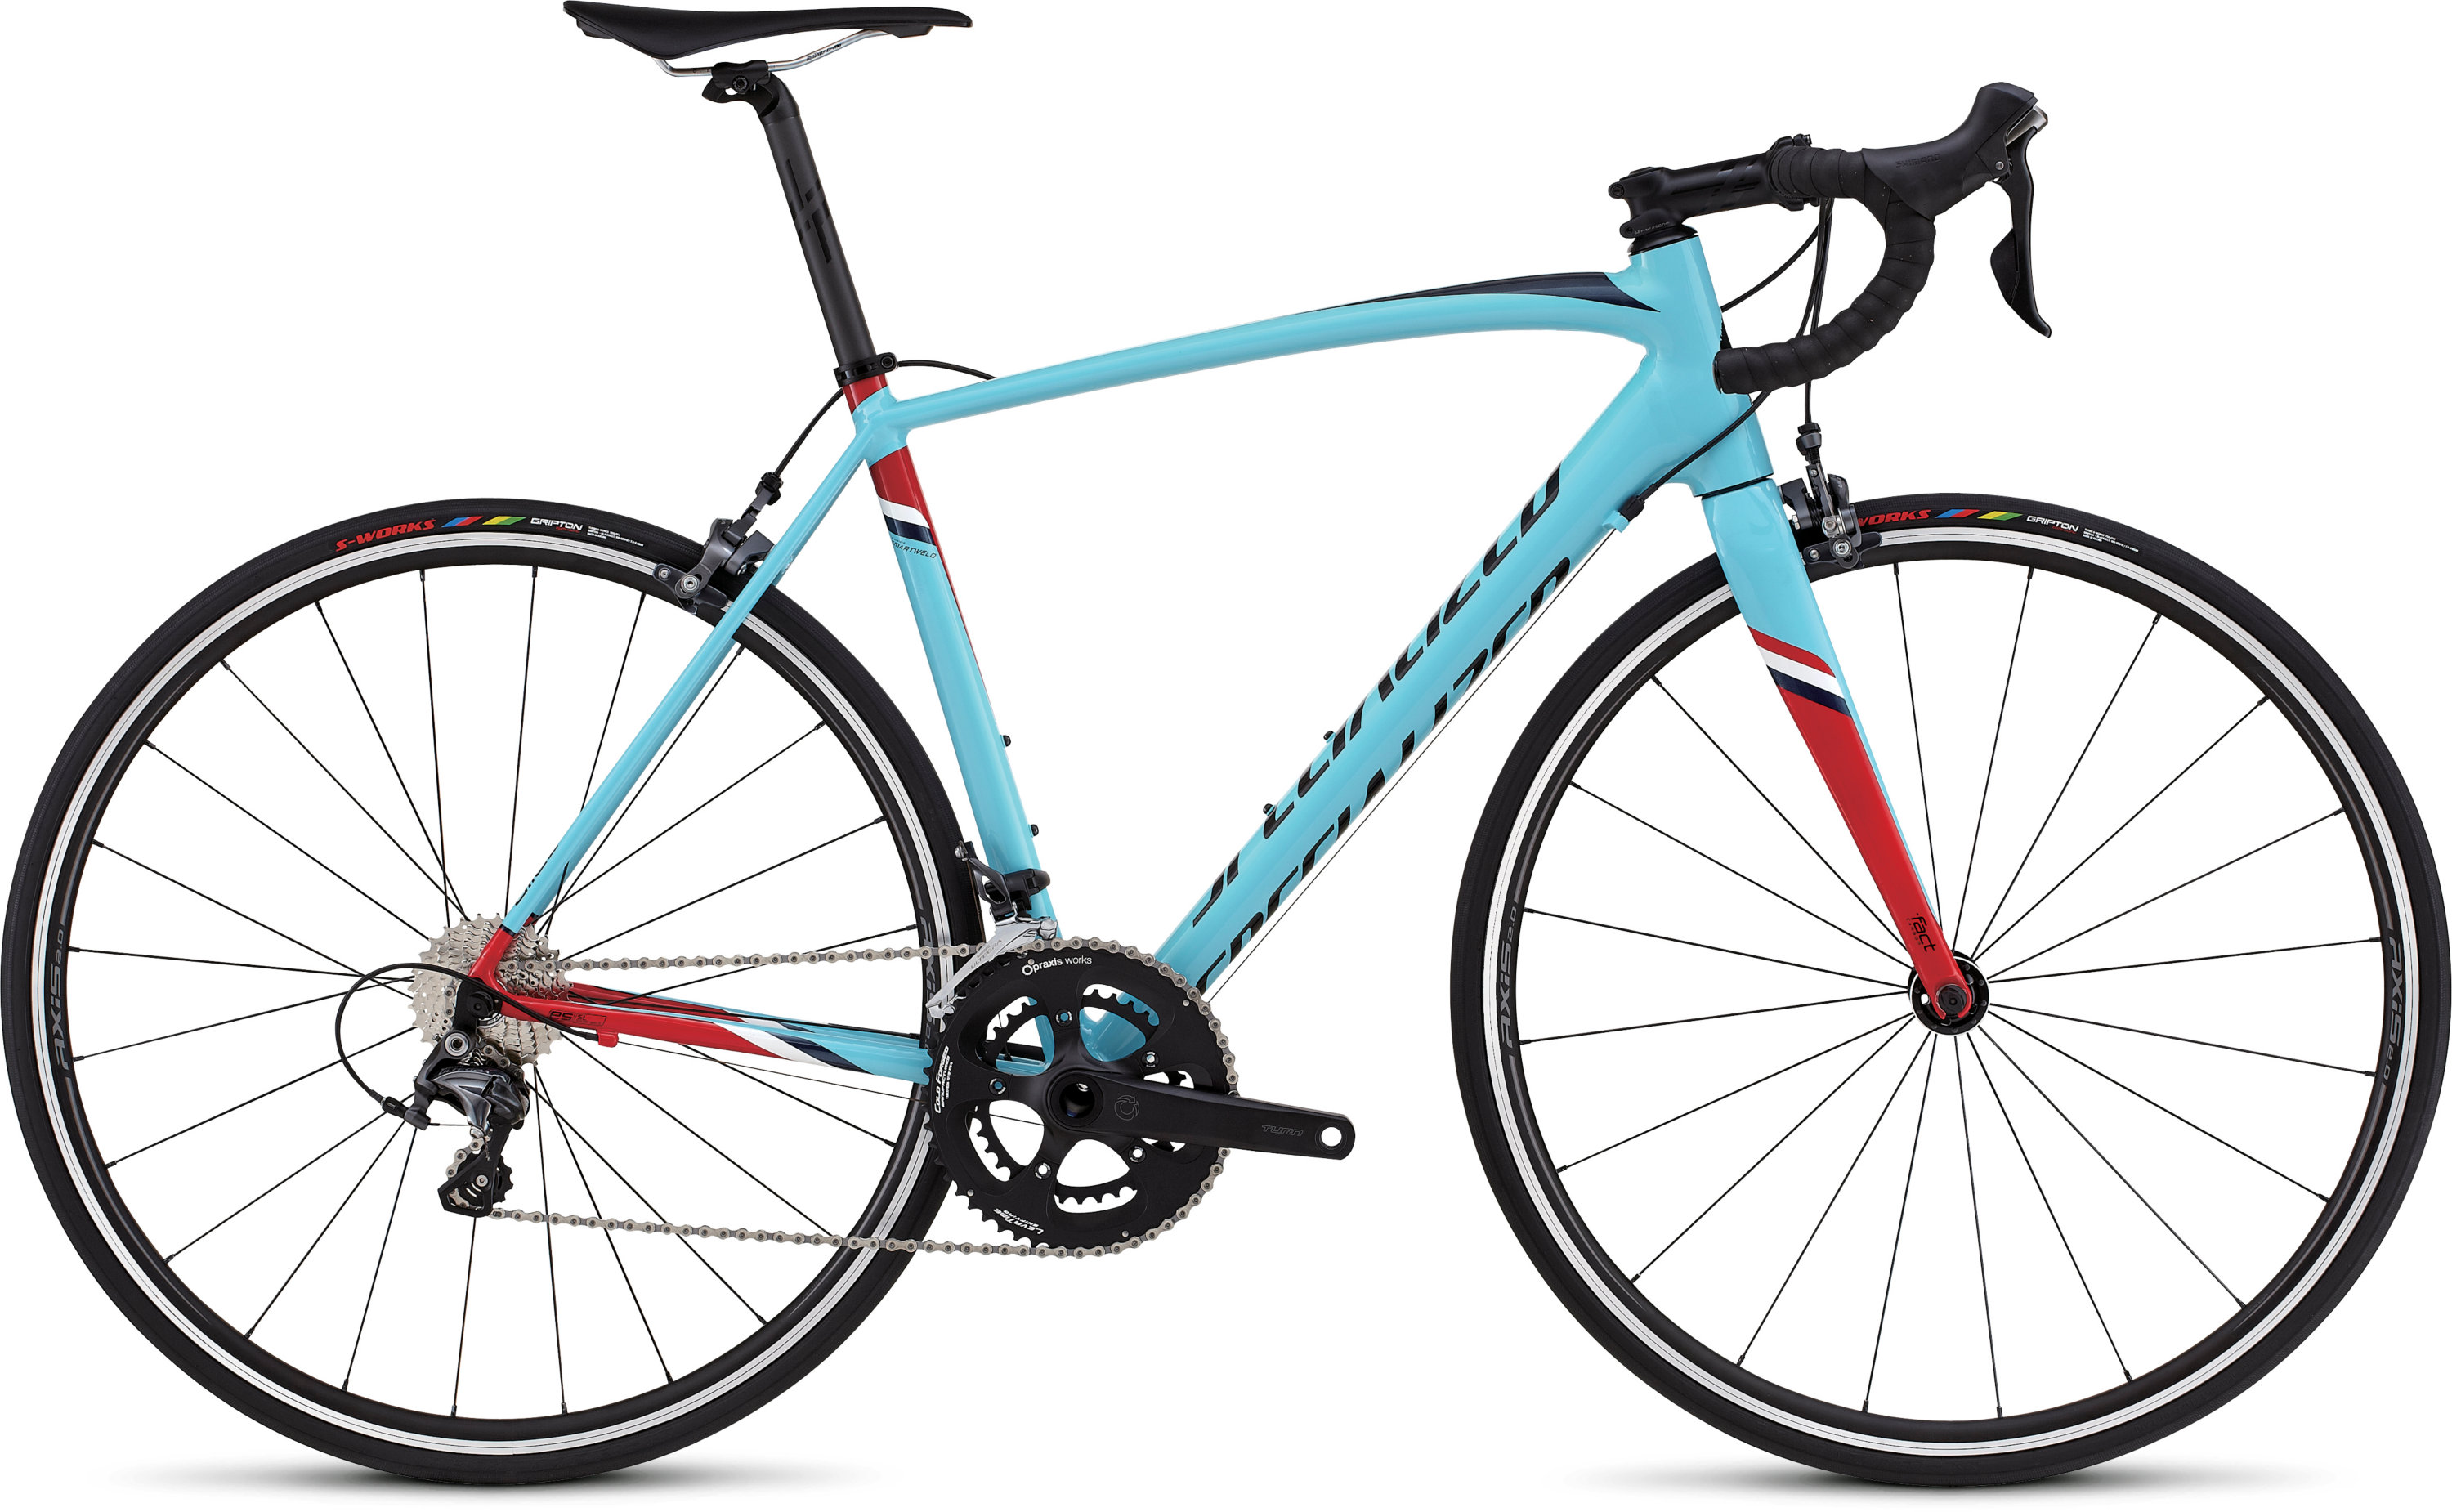 SPECIALIZED ALLEZ EXPERT DSW SL LTBLU/RED/TARBLK/NVY/WHT 49 - Bikedreams & Dustbikes